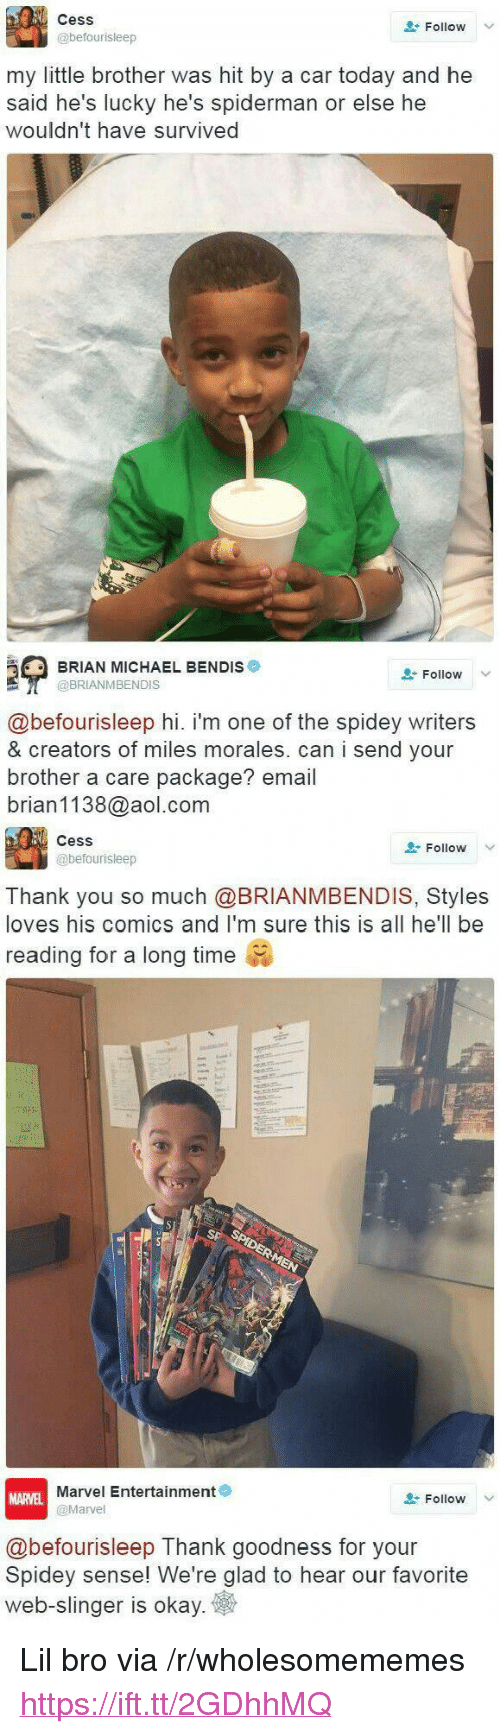 "Miles Morales: Cess  @befourisleep  Follow  my little brother was hit by a car today and he  said he's lucky he's spiderman or else he  wouldn't have survived  BRIAN MICHAEL BENDIS  @BRIANMBENDIS  Follow V  @befourisleep hi. i'm one of the spidey writers  & creators of miles morales. can i send your  brother a care package? email  brian1138@aol.com  CesS  @befourisleep  Follow  Thank you so much @BRIANMBENDIS, Styles  loves his comics and I'm sure this is all he'll be  reading for a long time  Marvel Entertainment  @Marvel  MARVEL  Follow  @befourisleep Thank goodness for your  Spidey sense! We're glad to hear our favorite  web-slinger is okay <p>Lil bro via /r/wholesomememes <a href=""https://ift.tt/2GDhhMQ"">https://ift.tt/2GDhhMQ</a></p>"